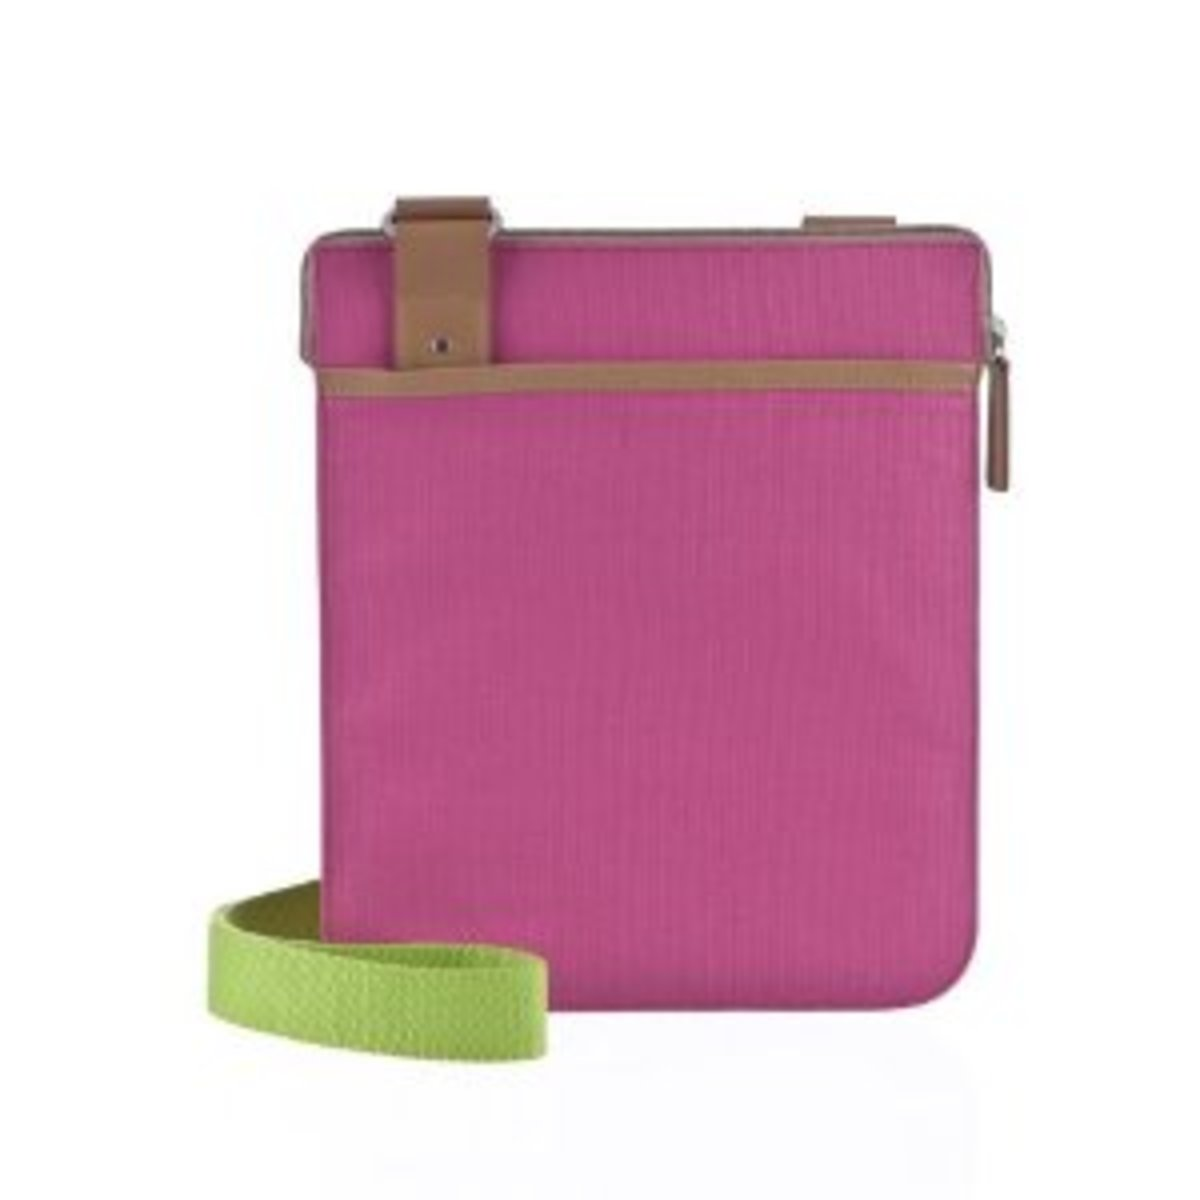 Best iPad Purse designs - mEdge